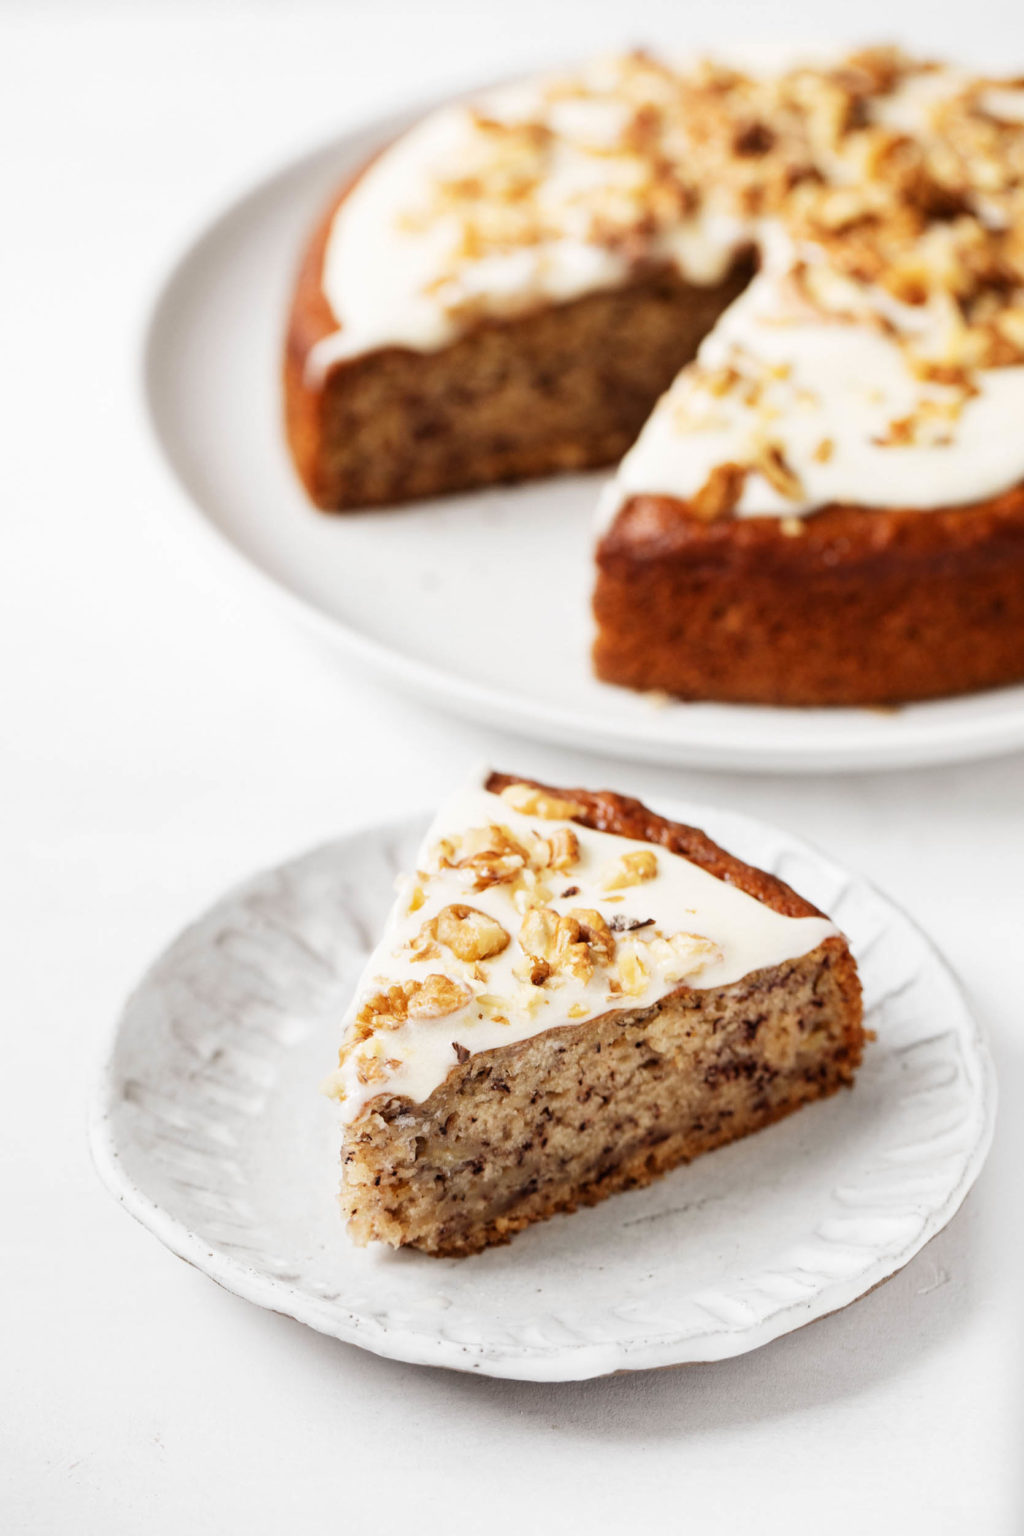 A beautiful, freshly cut slice of vegan banana cake rests on a small dessert plate, decorated with frosting and chopped nuts.